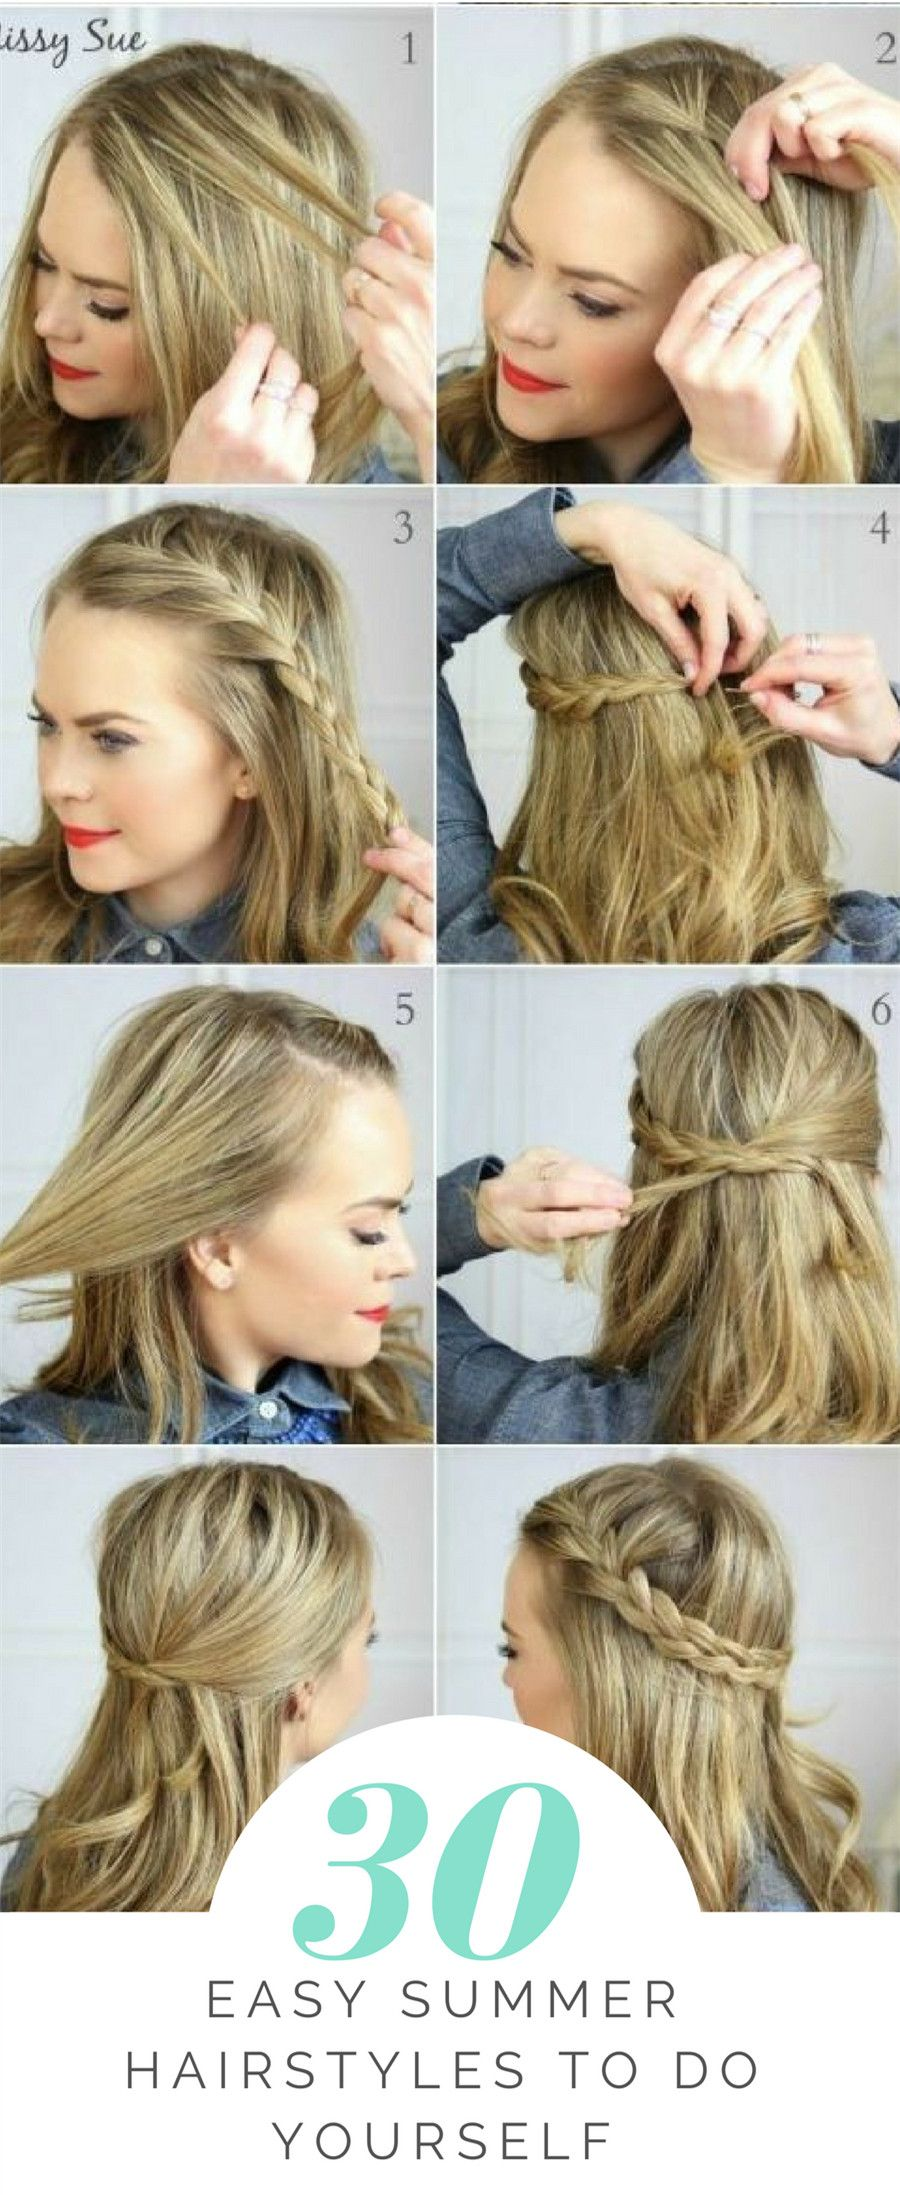 30 easy summer hairstyles to do yourself peinados